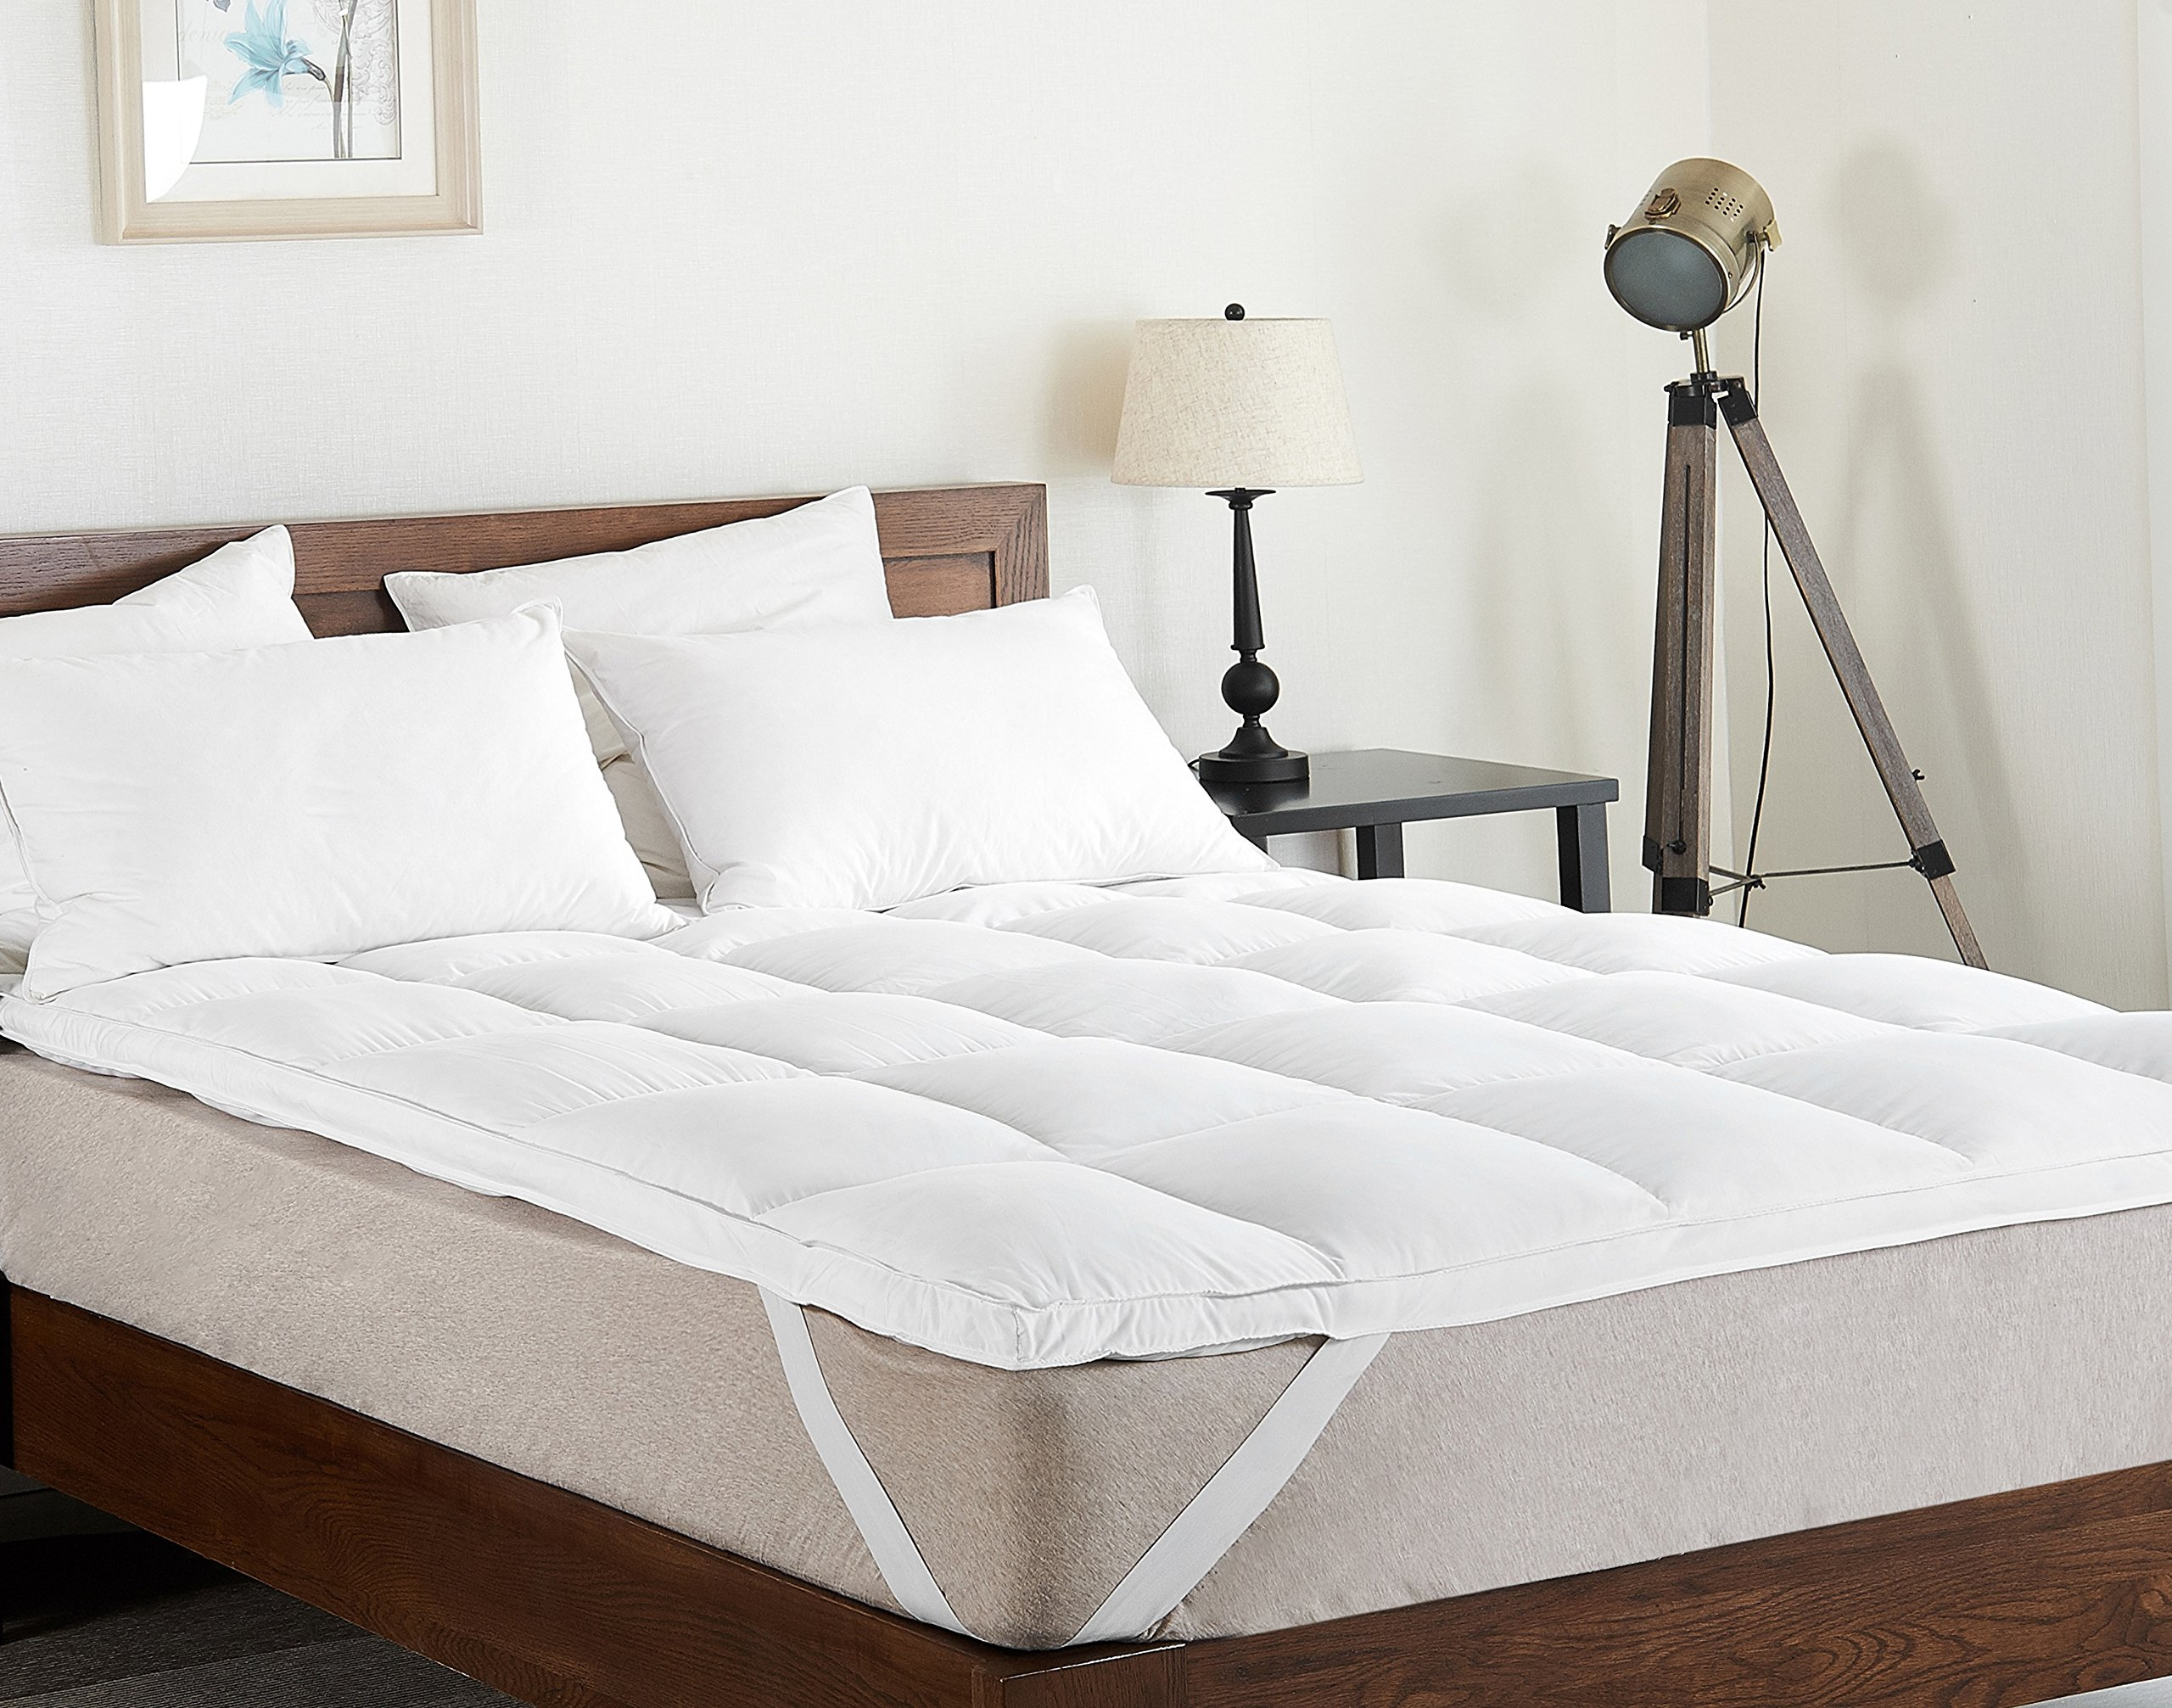 Cheer Collection Extra Plush Luxurious Down Alternative Feather Bed Mattress Topper, Twin